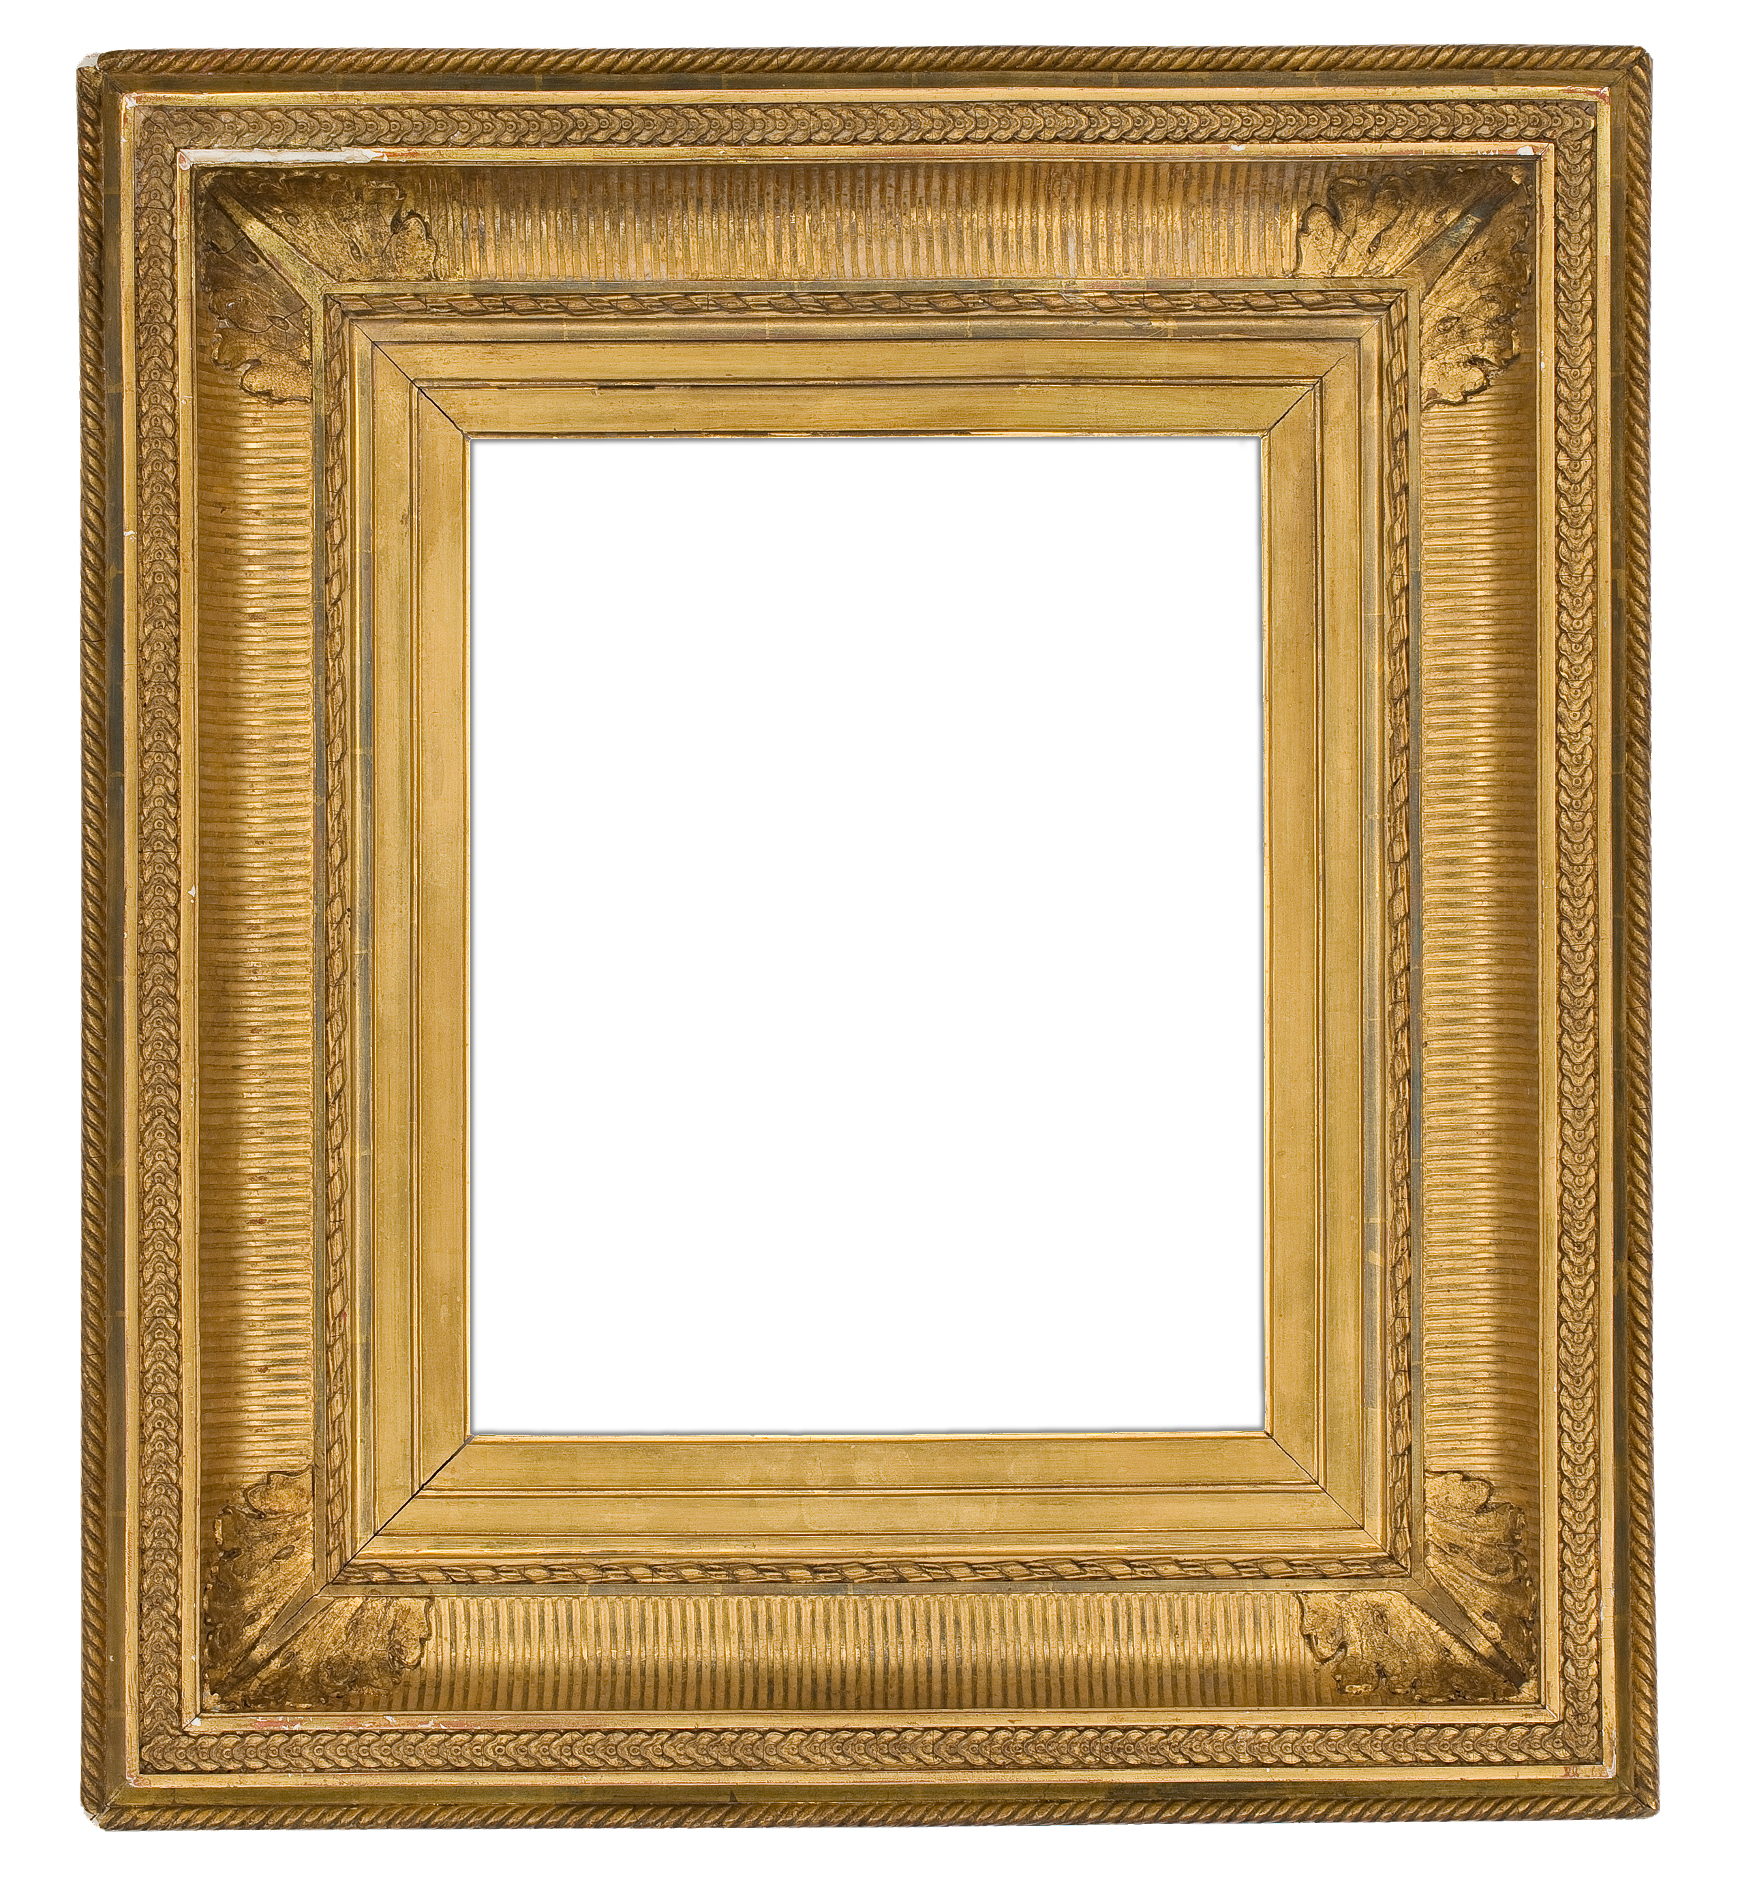 Painting Frames Pairing Frames With 19th Century Art